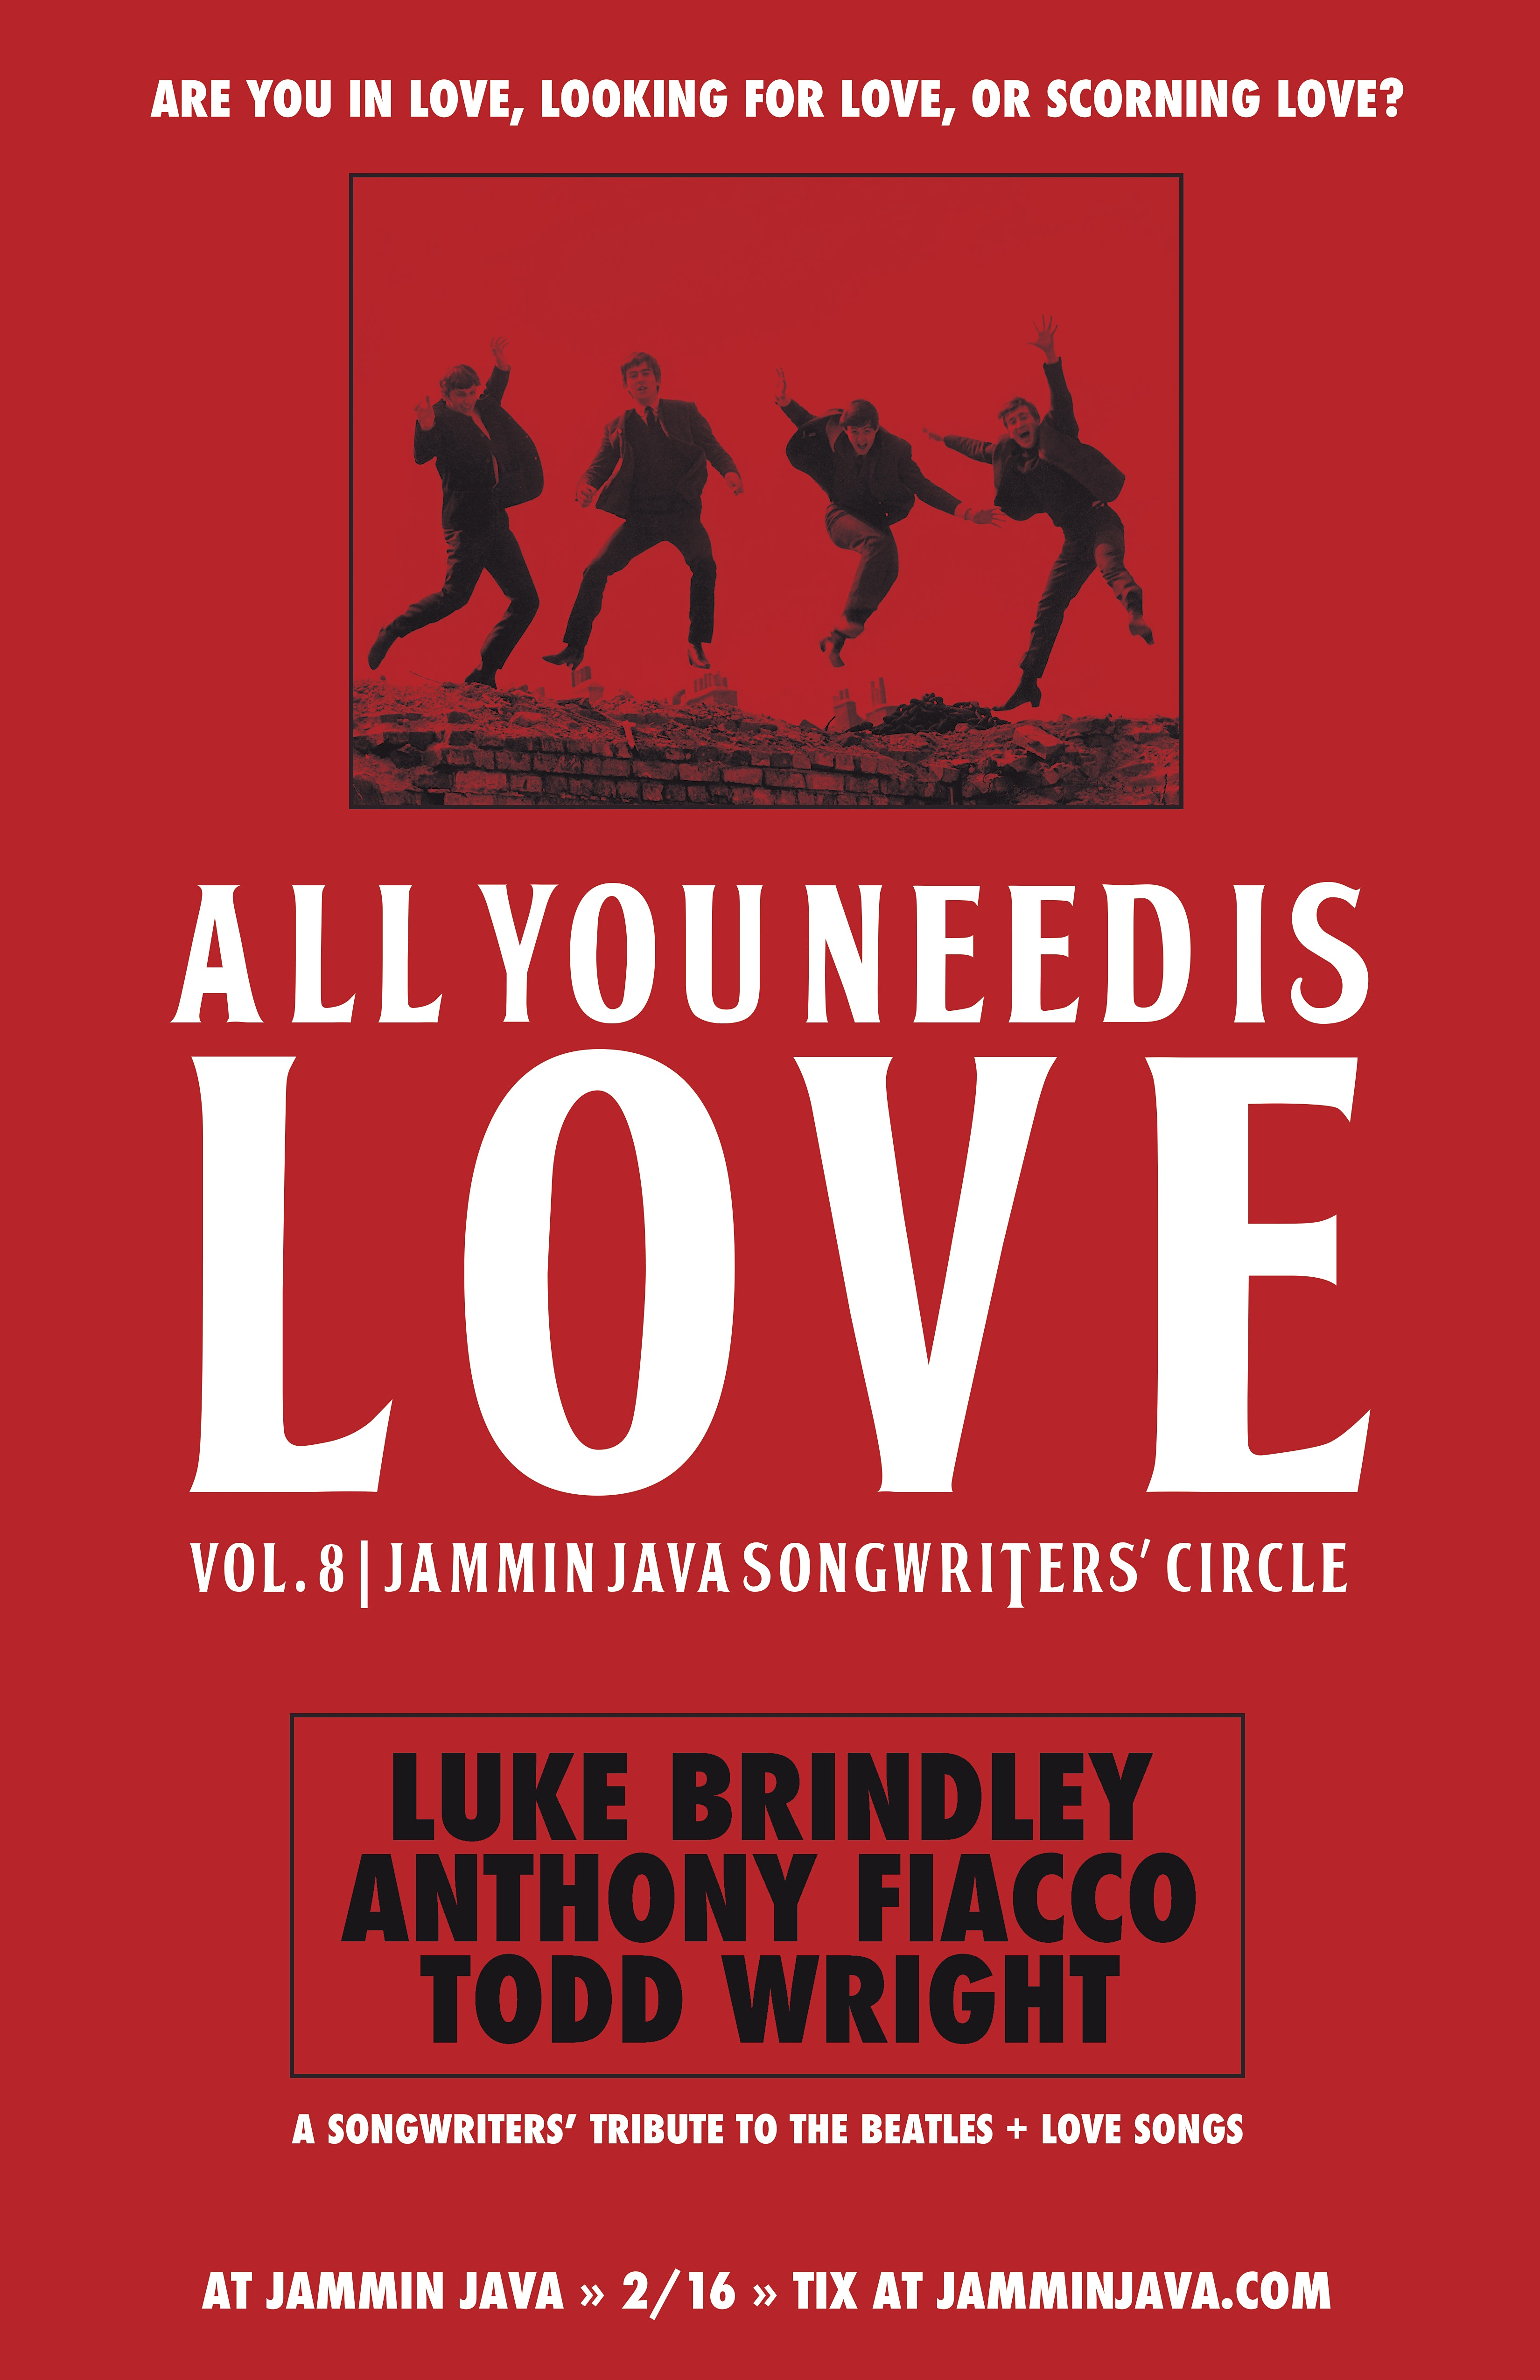 All That Way For Love 2011 all you need is love 8 – jammin java's songwriter circle